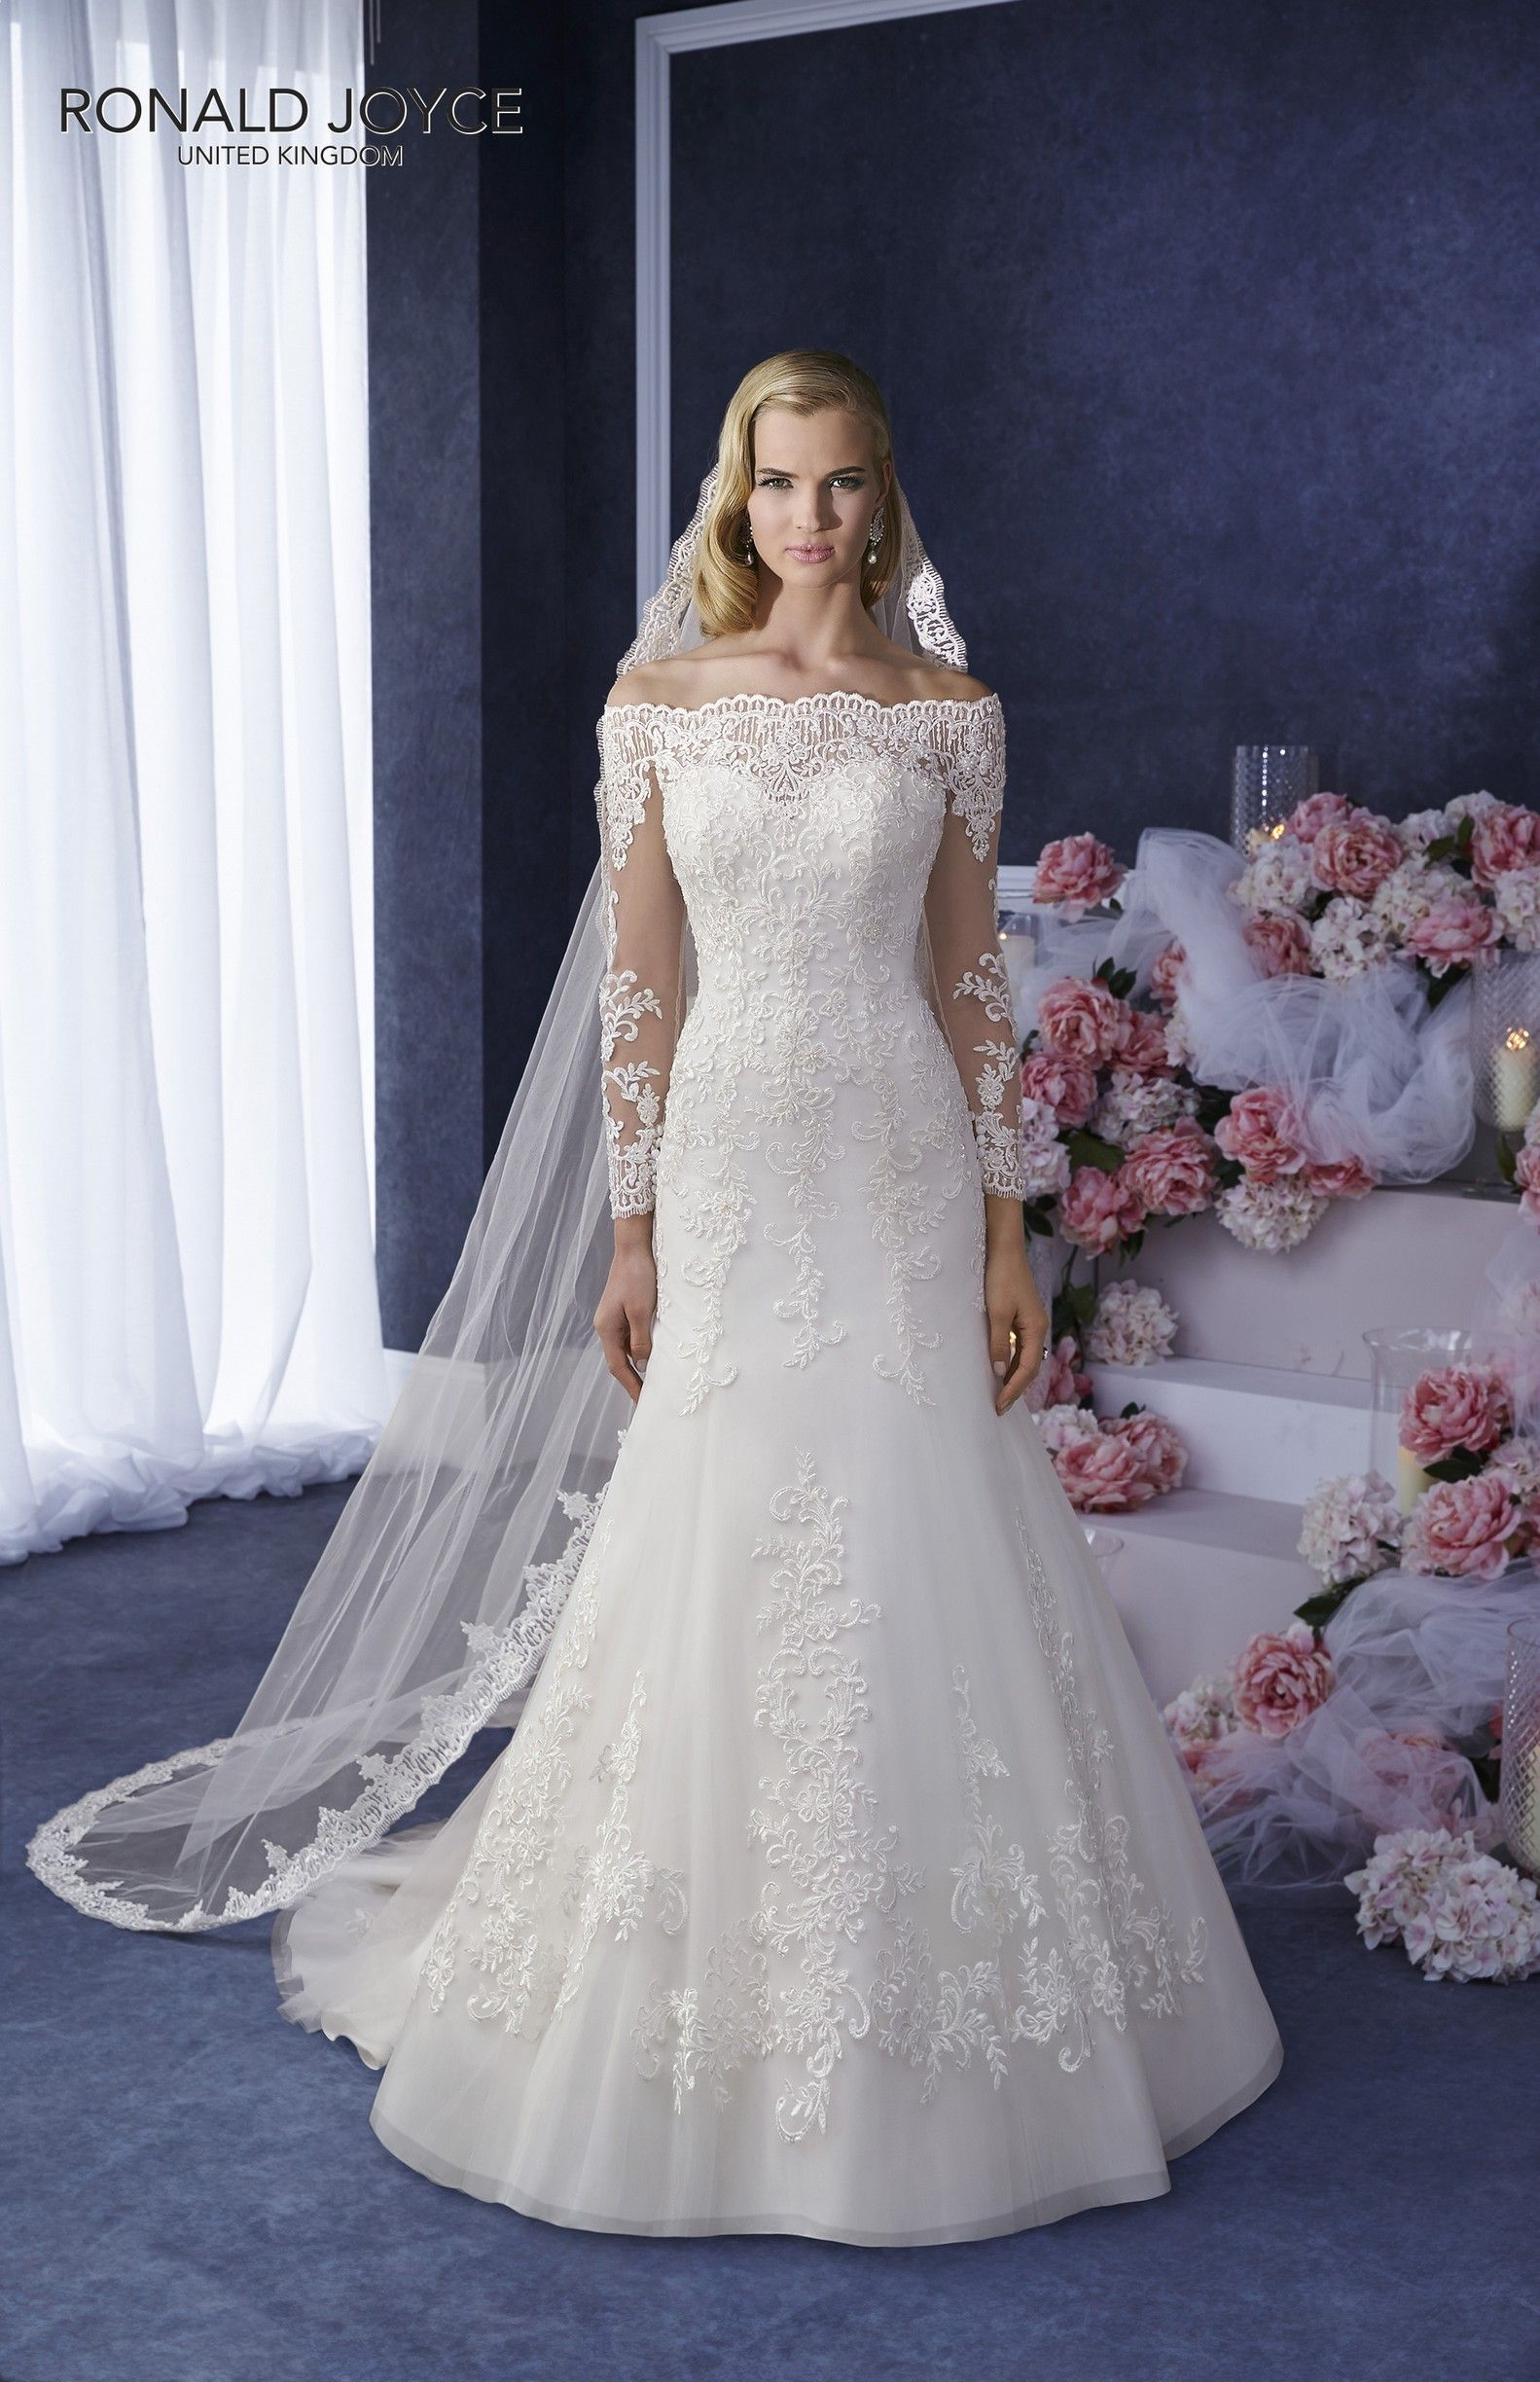 RONALD JOYCE INTERNATIONAL - Wedding dresses and bridal gowns ...